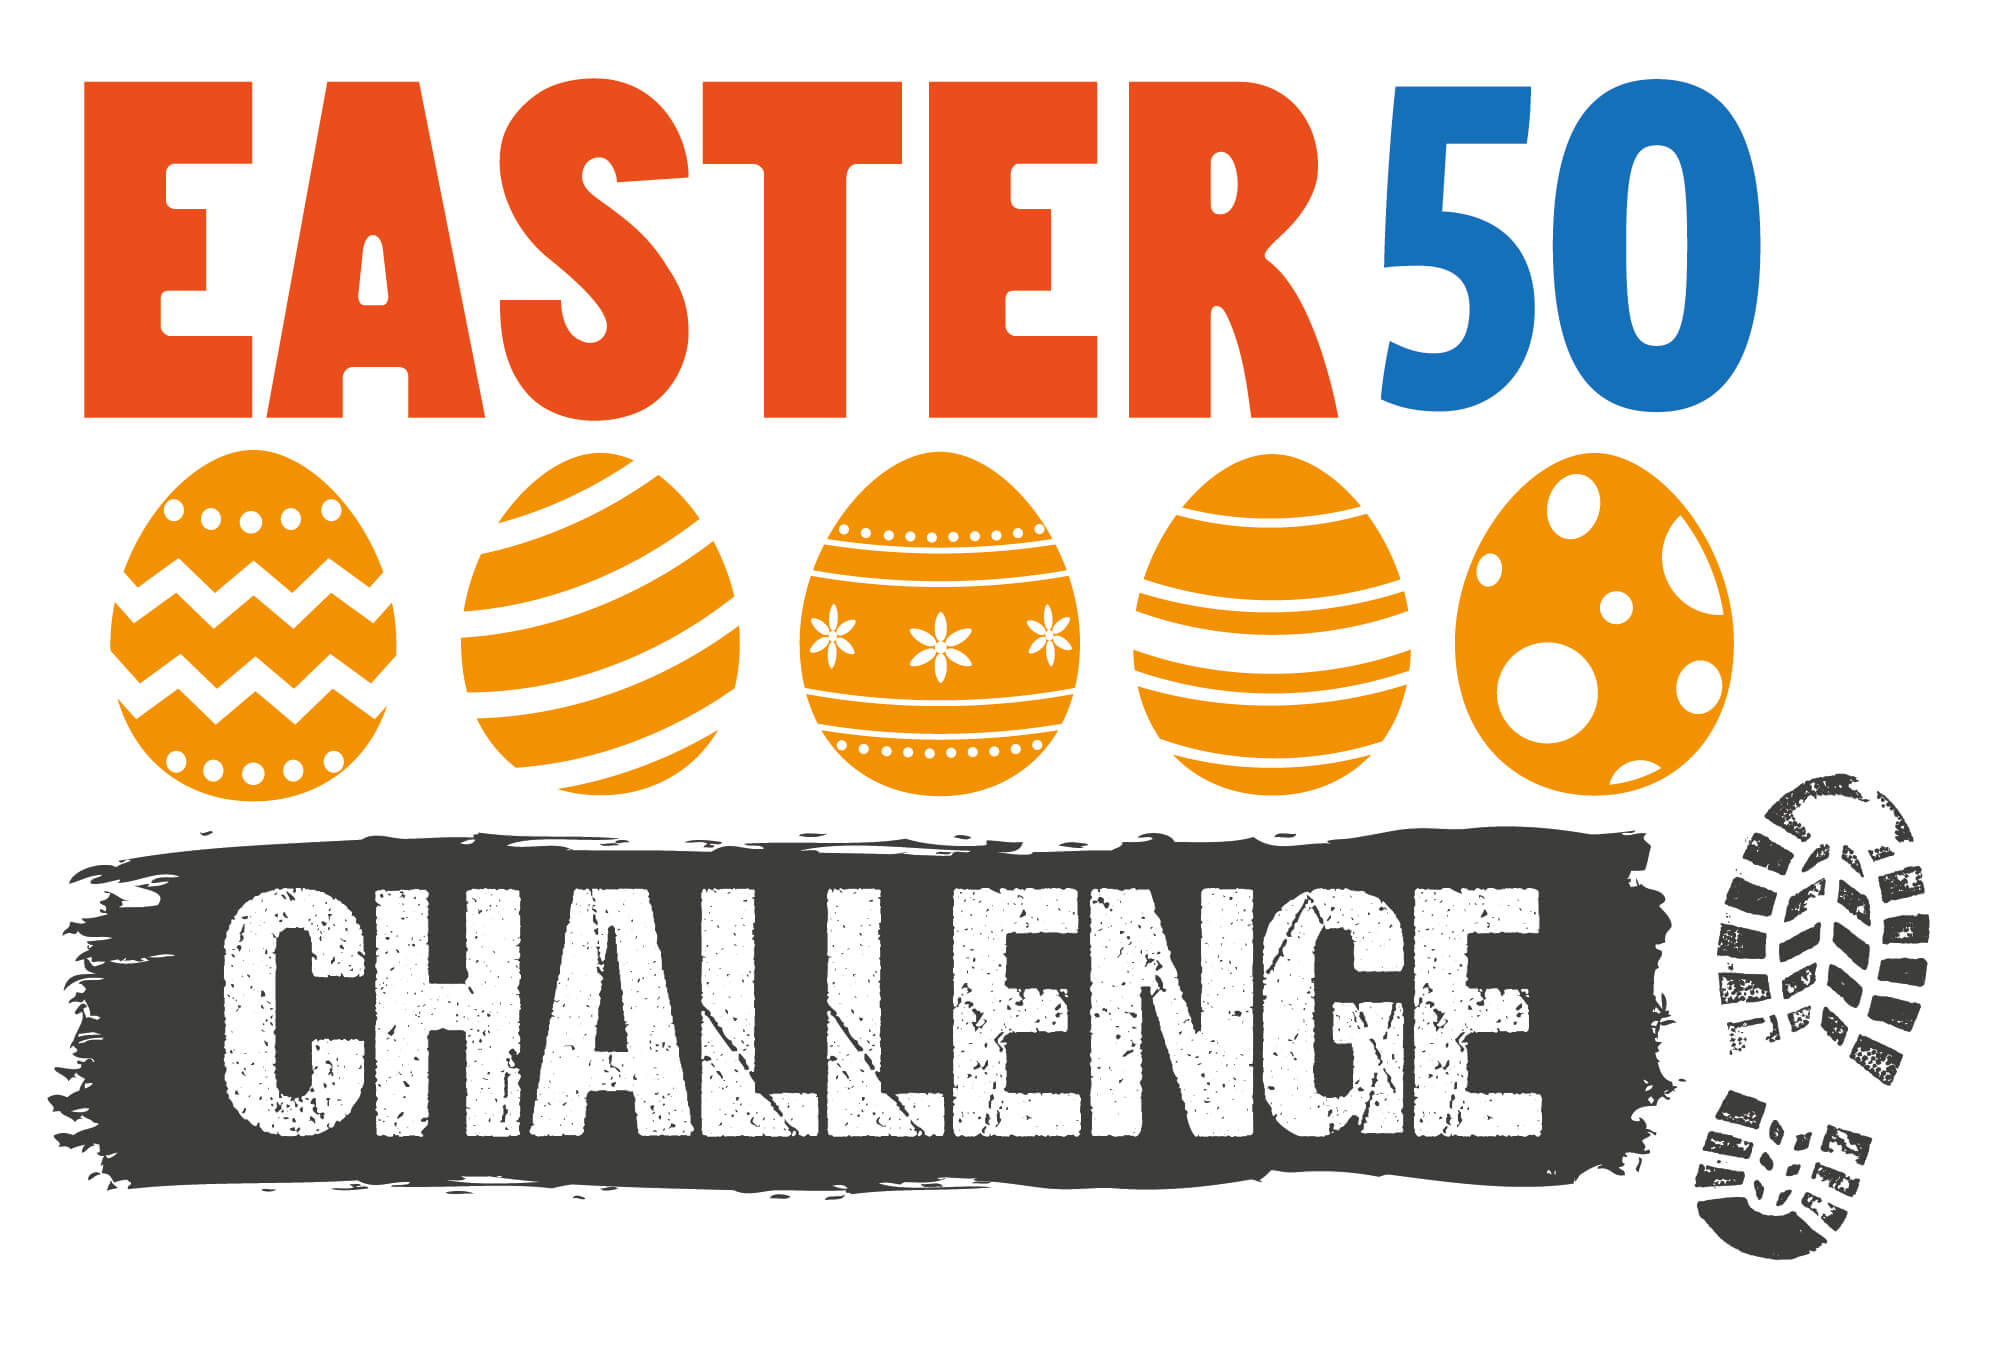 Easter Challenge 50 Logo with easter eggs